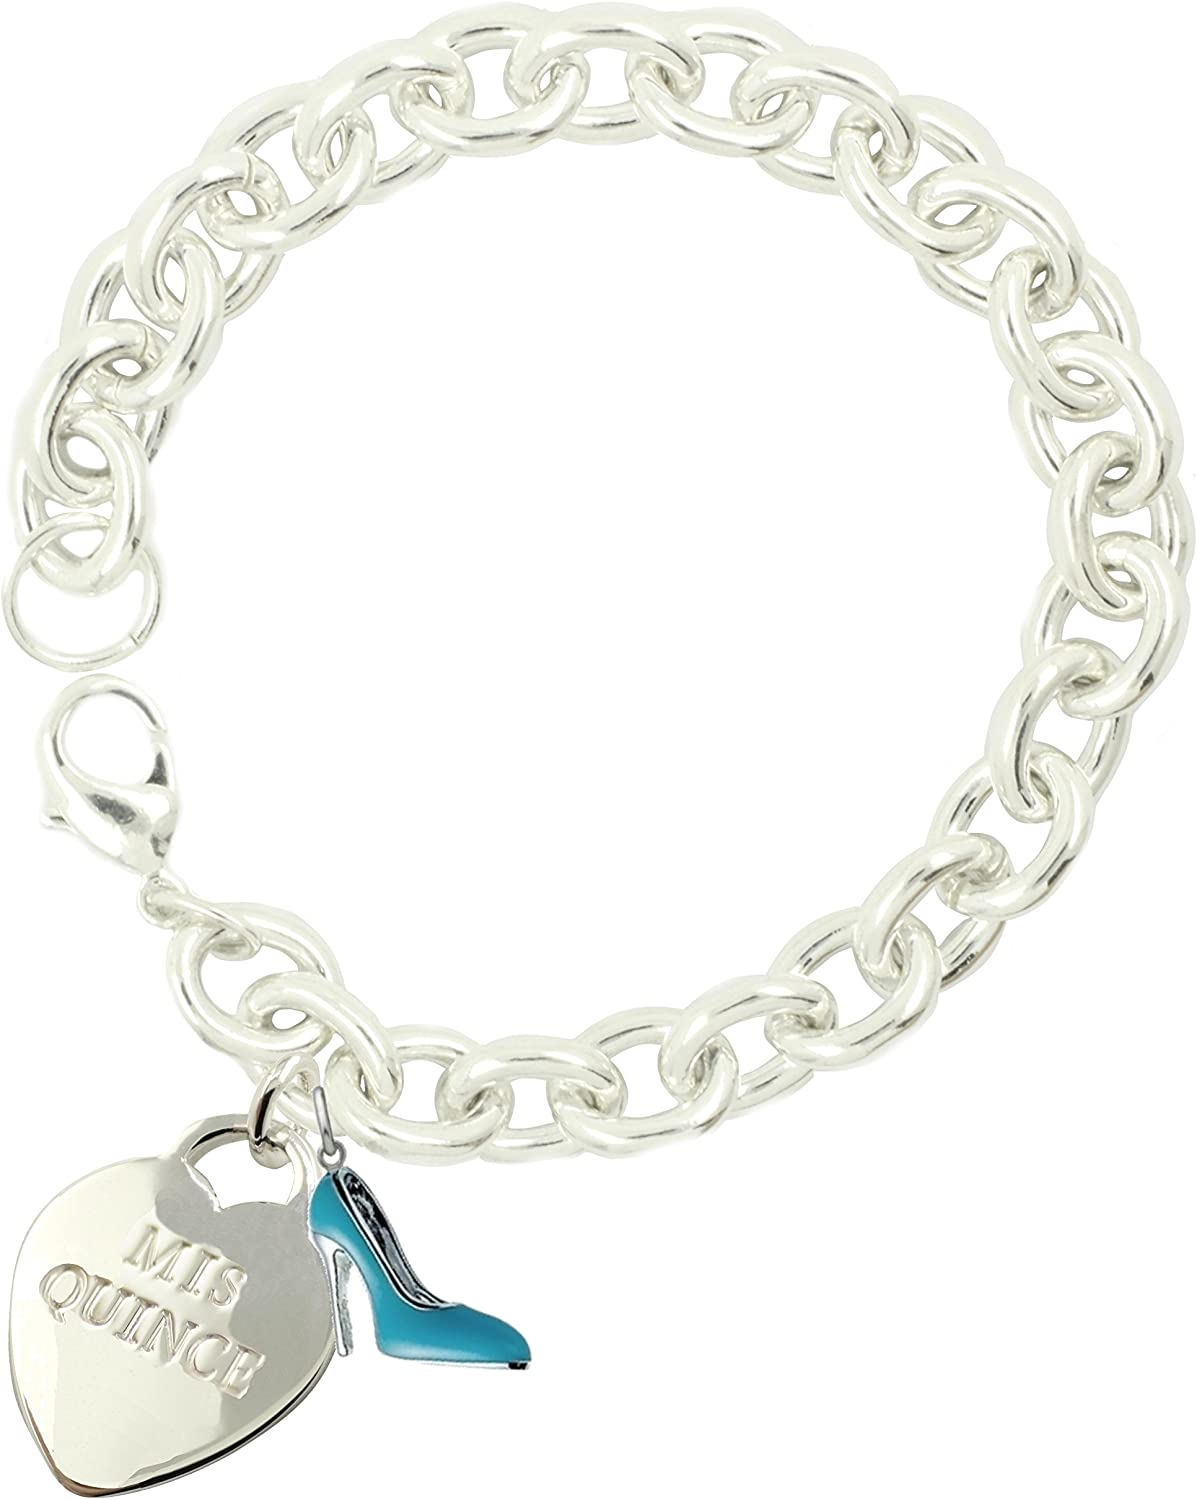 New York Columbus Mall 925 Co. Plated Many popular brands BH Bracelet Quinceanera